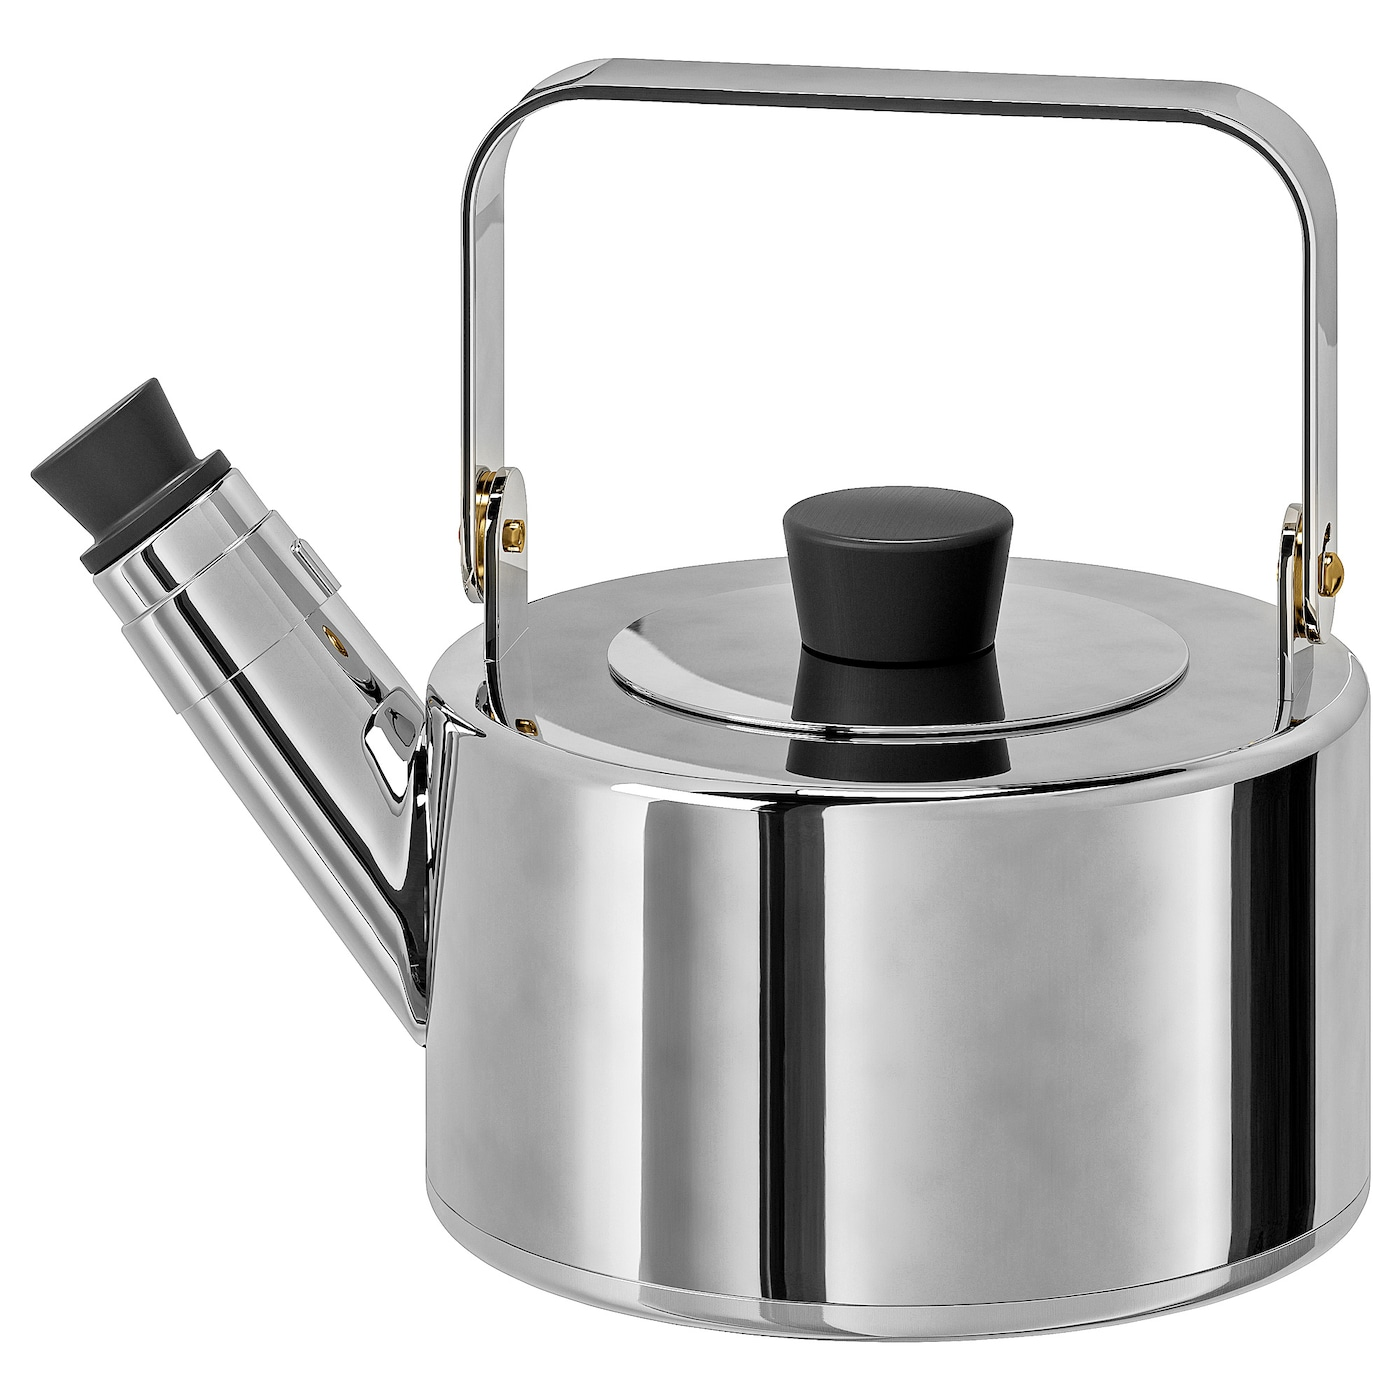 IKEA METALLISK kettle Whistle function when water boils.